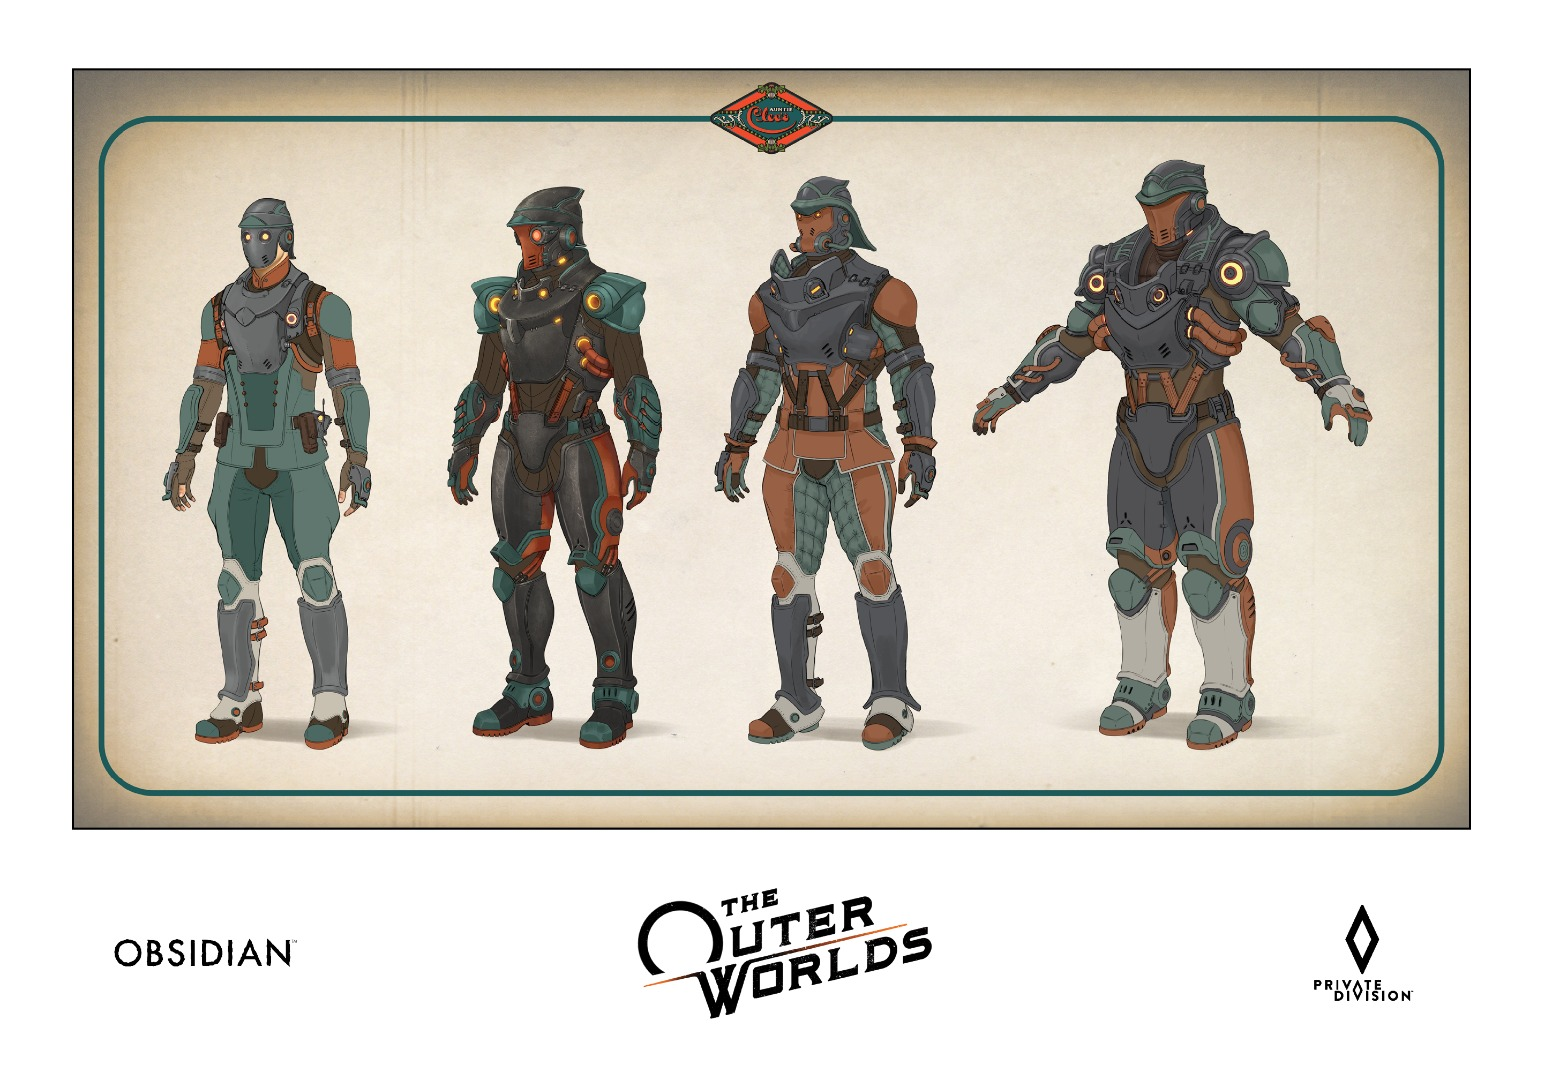 concept-art-from-obsidians-new-sci-fi-rpg-the-outer-worlds_xzdg.jpg